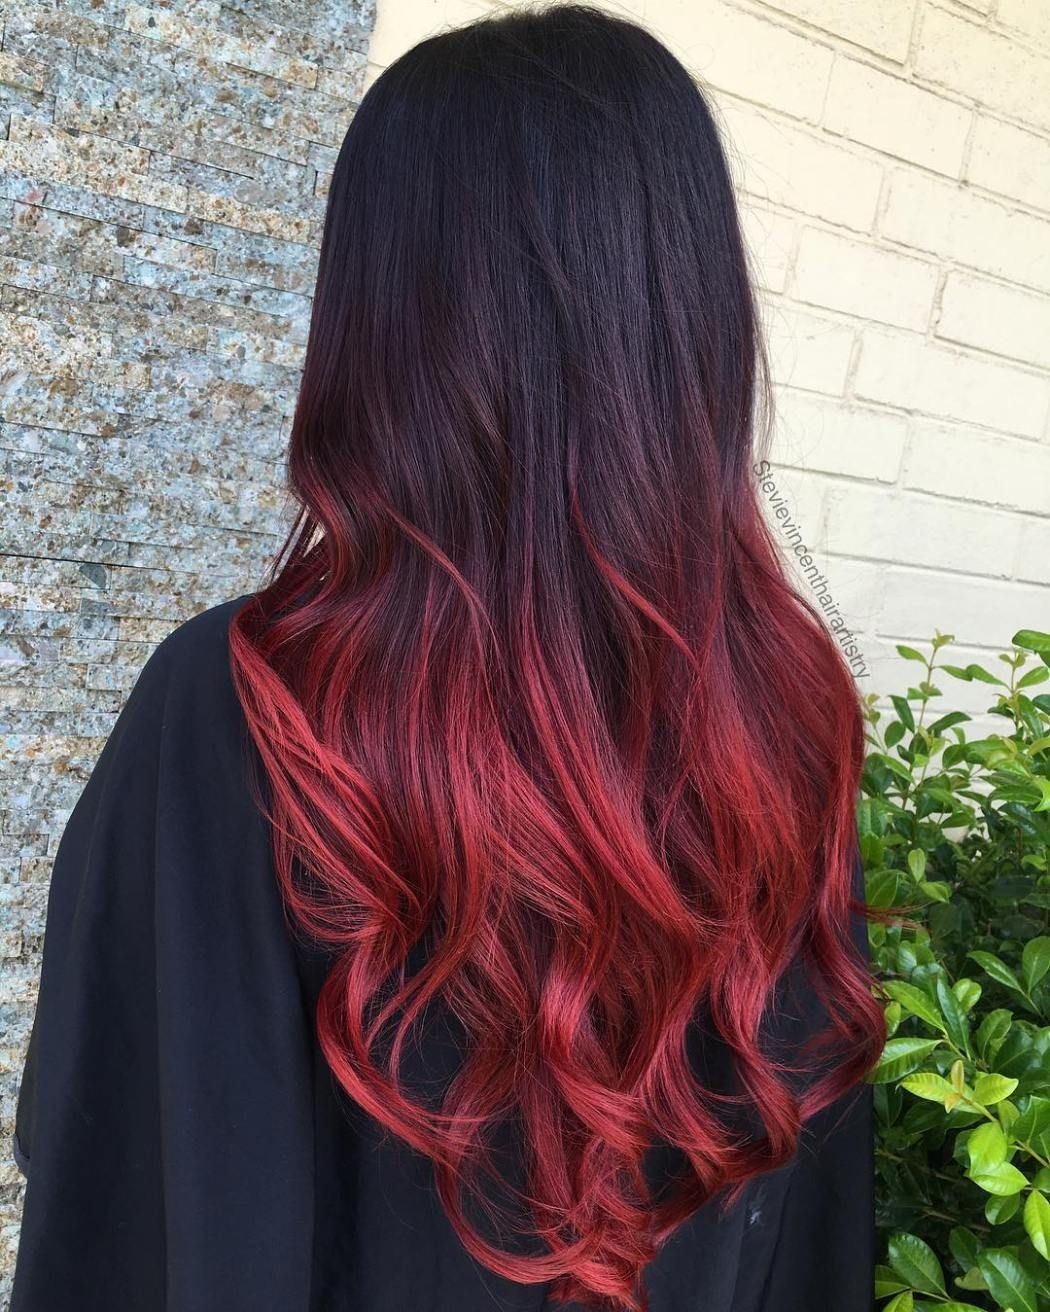 60 Best Ombre Hair Color Ideas For Blond Brown Red And Black Hair Black Hair Red Ombre Black Hair Ombre Hair Color For Black Hair